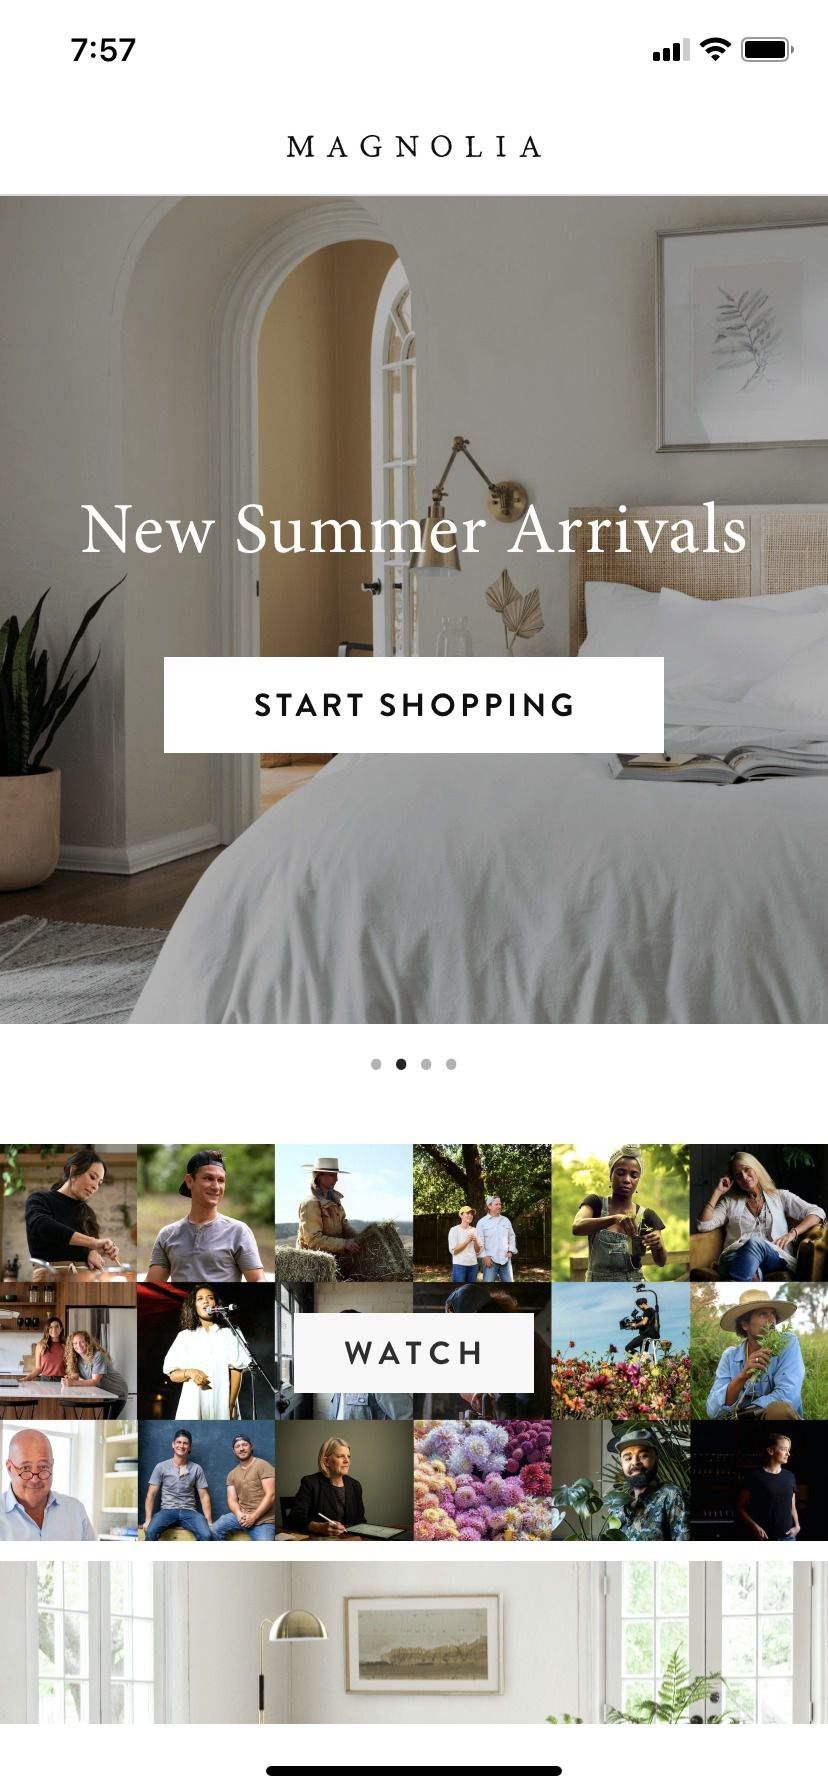 Screen grab of the direct link to Magnolia shopping on a new mobile streaming app launched July 15 for the Magnolia Network, a joint venture between Chip and Joanna Gaines and Discovery Inc.